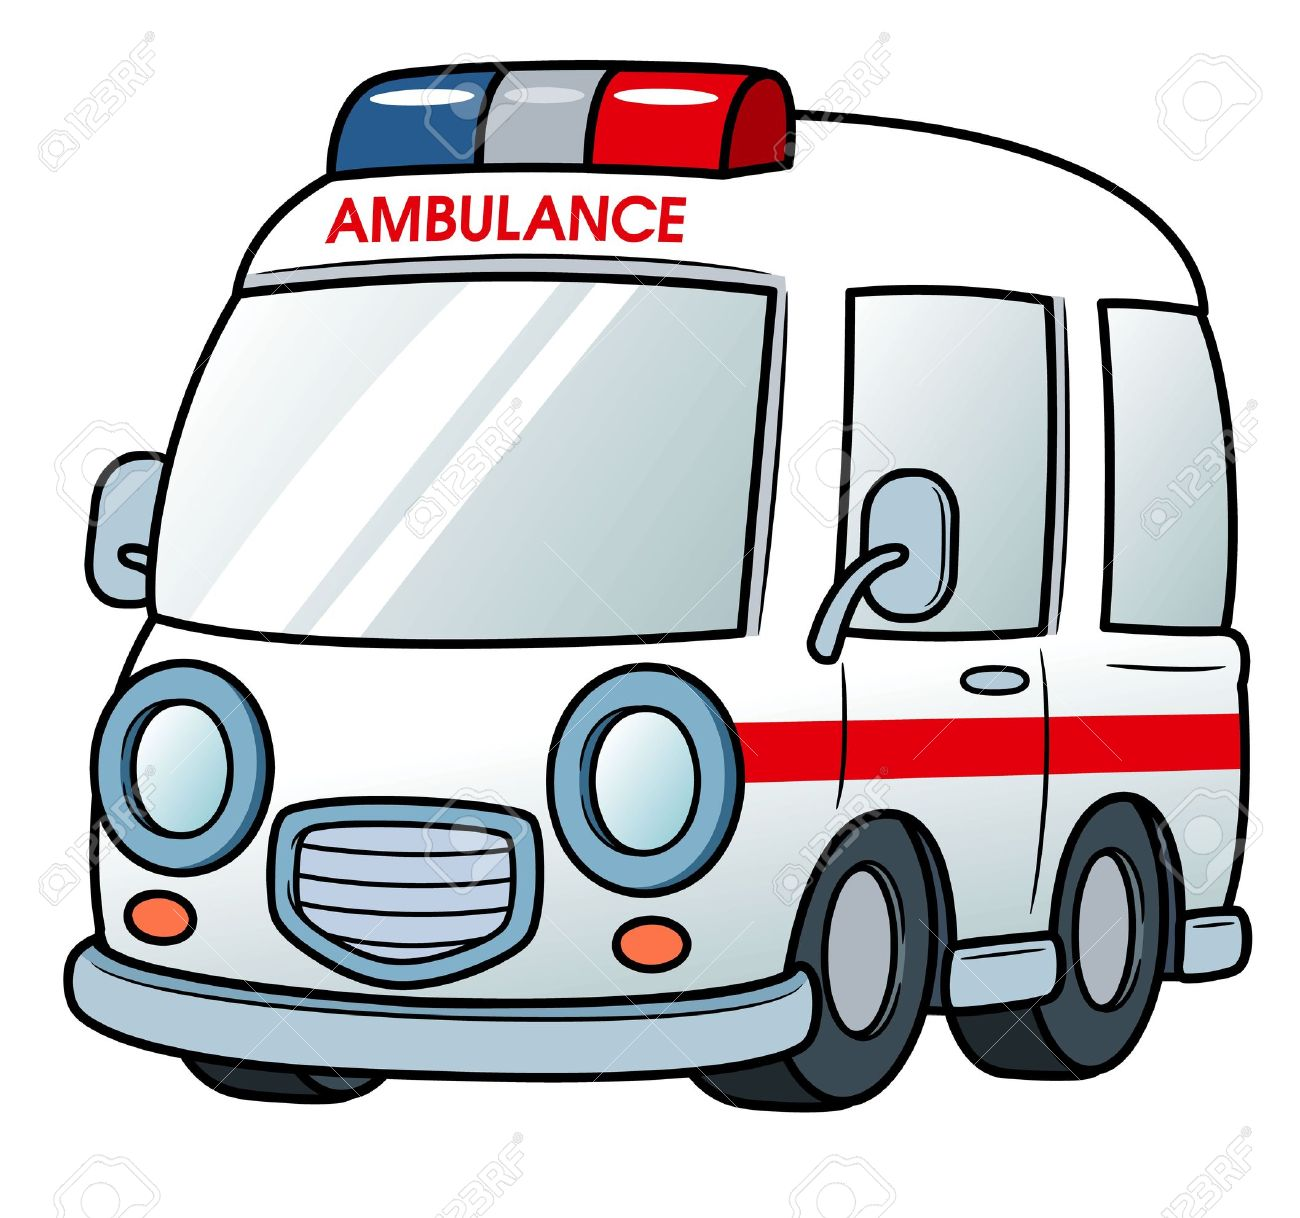 Ambulance clipart  39,025 Ambulance Stock Vector Illustration And Royalty Free ...